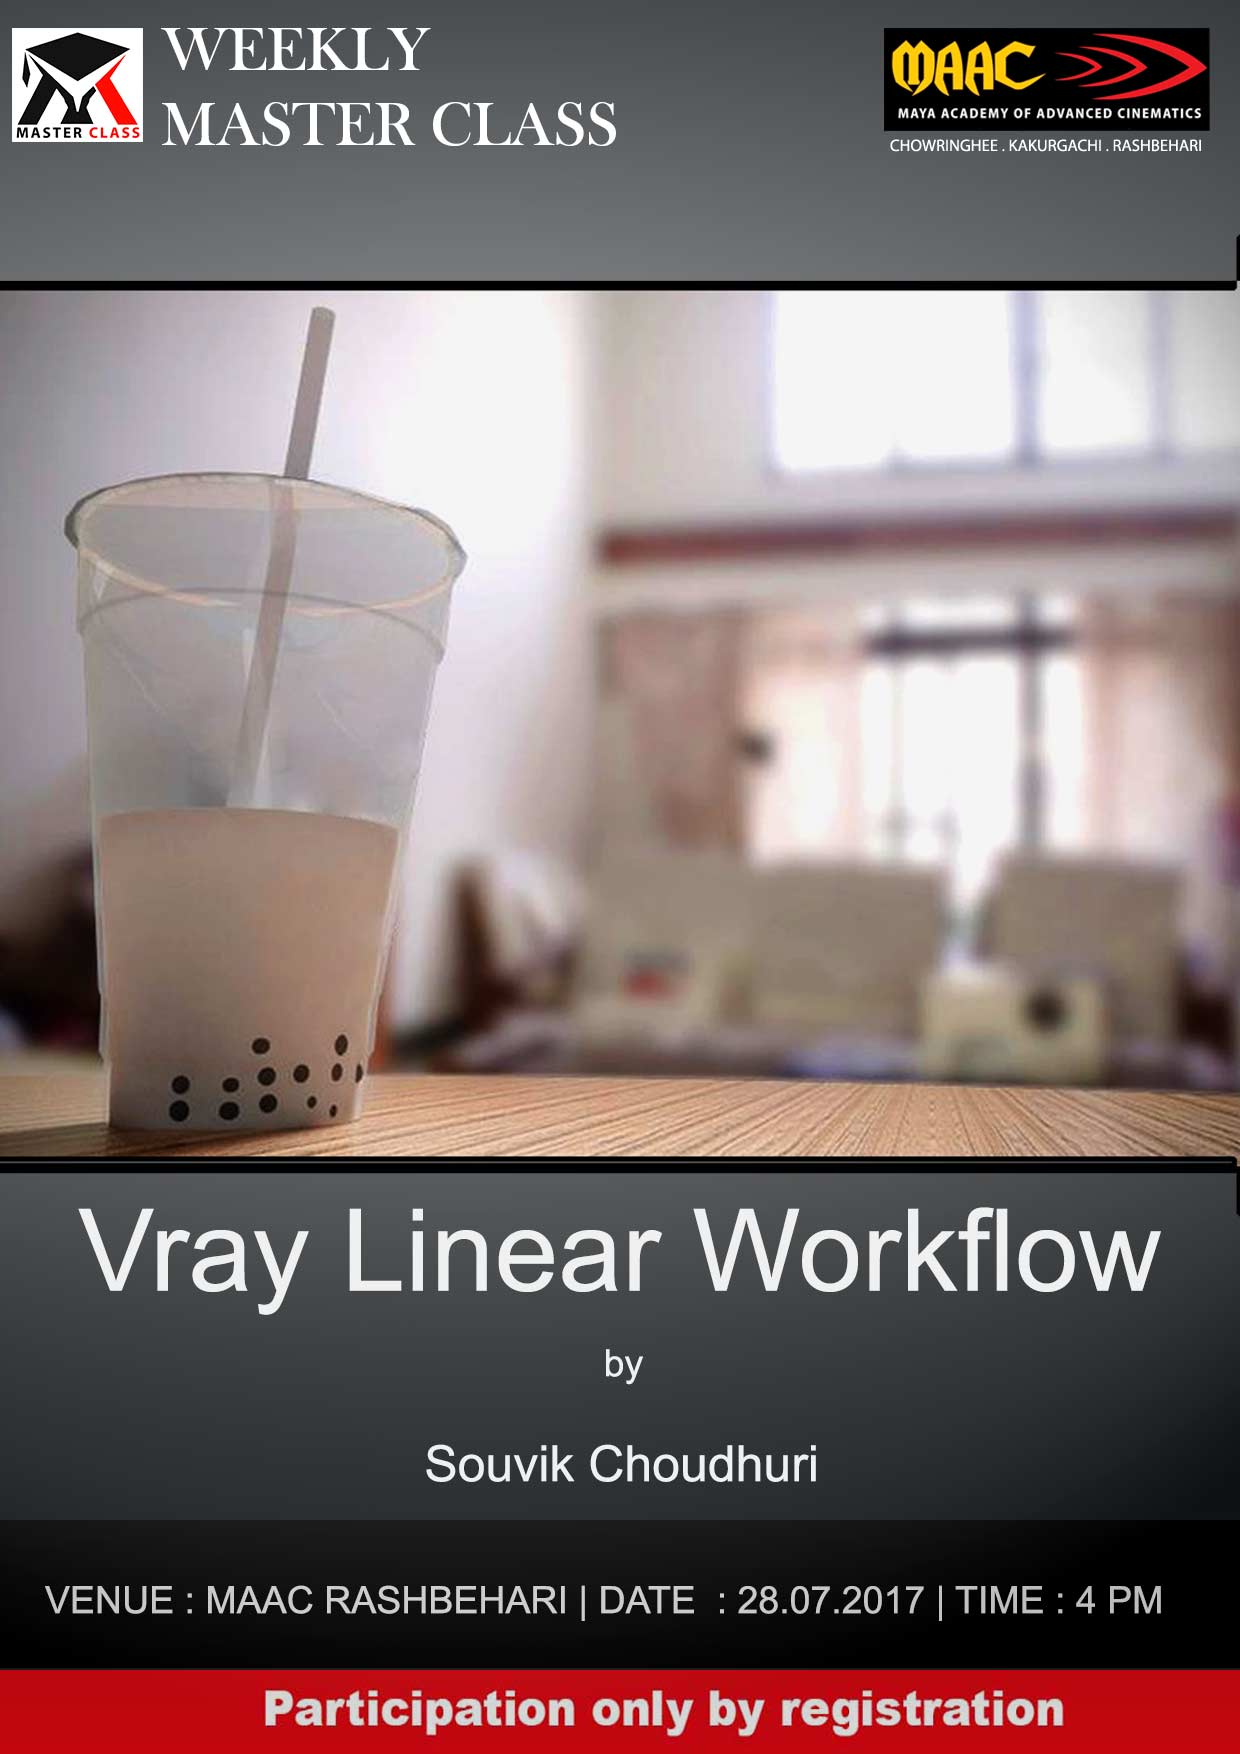 Weekly Master Class on Vray Linear Workflow - Souvik Choudhuri